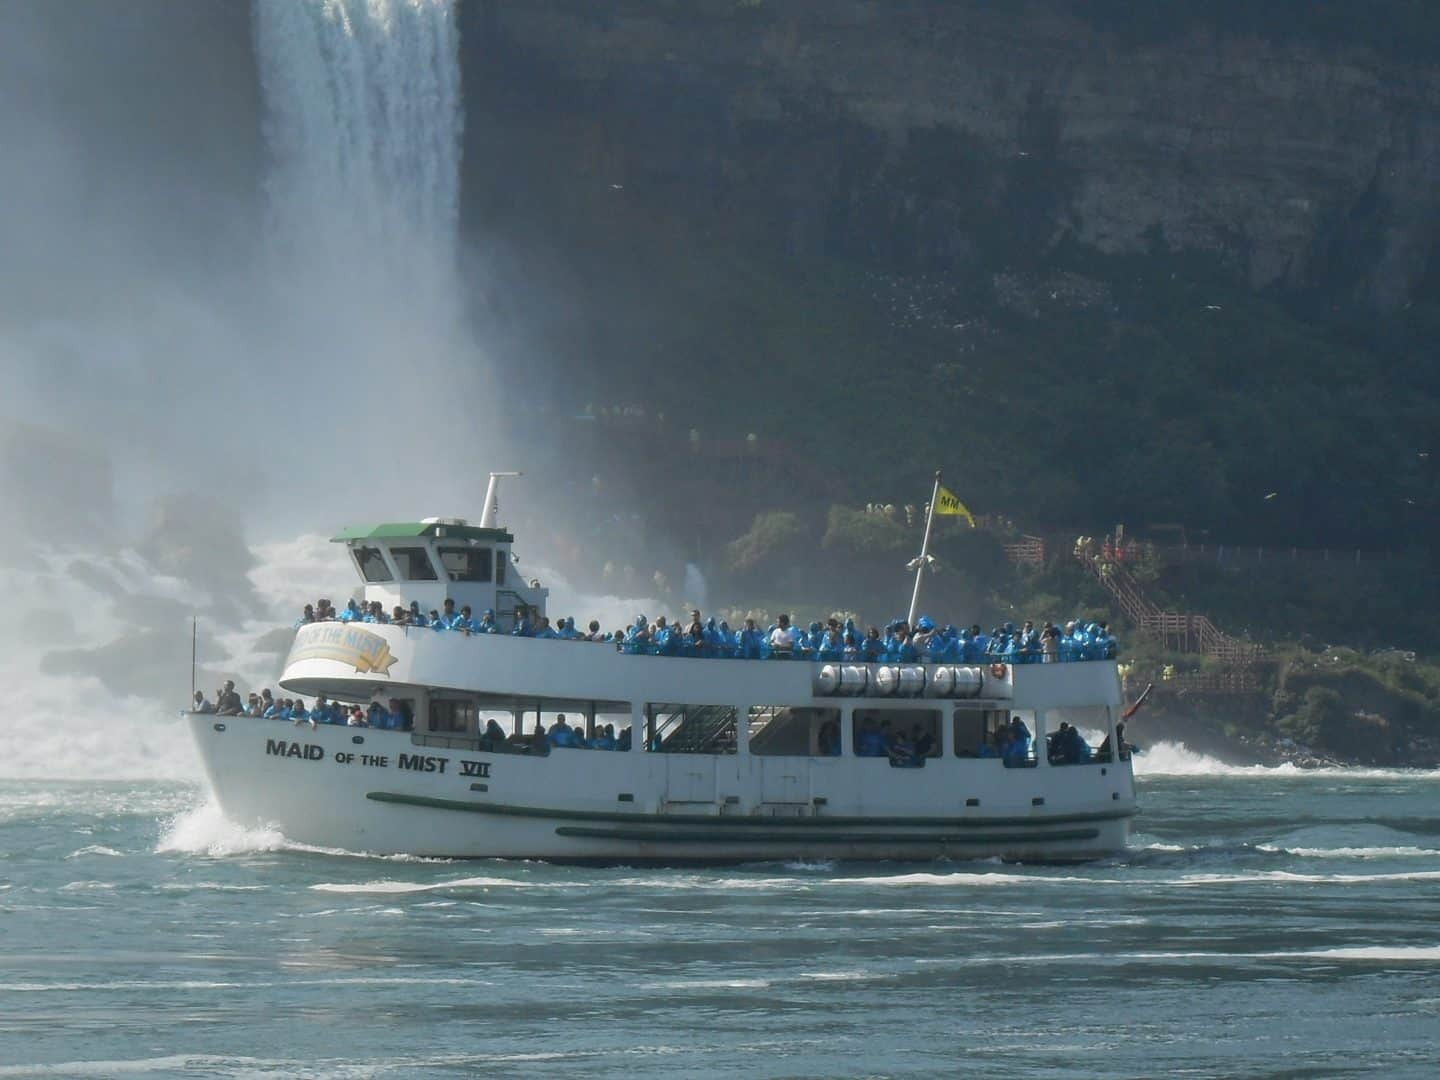 Taken on the Maid of the Mist